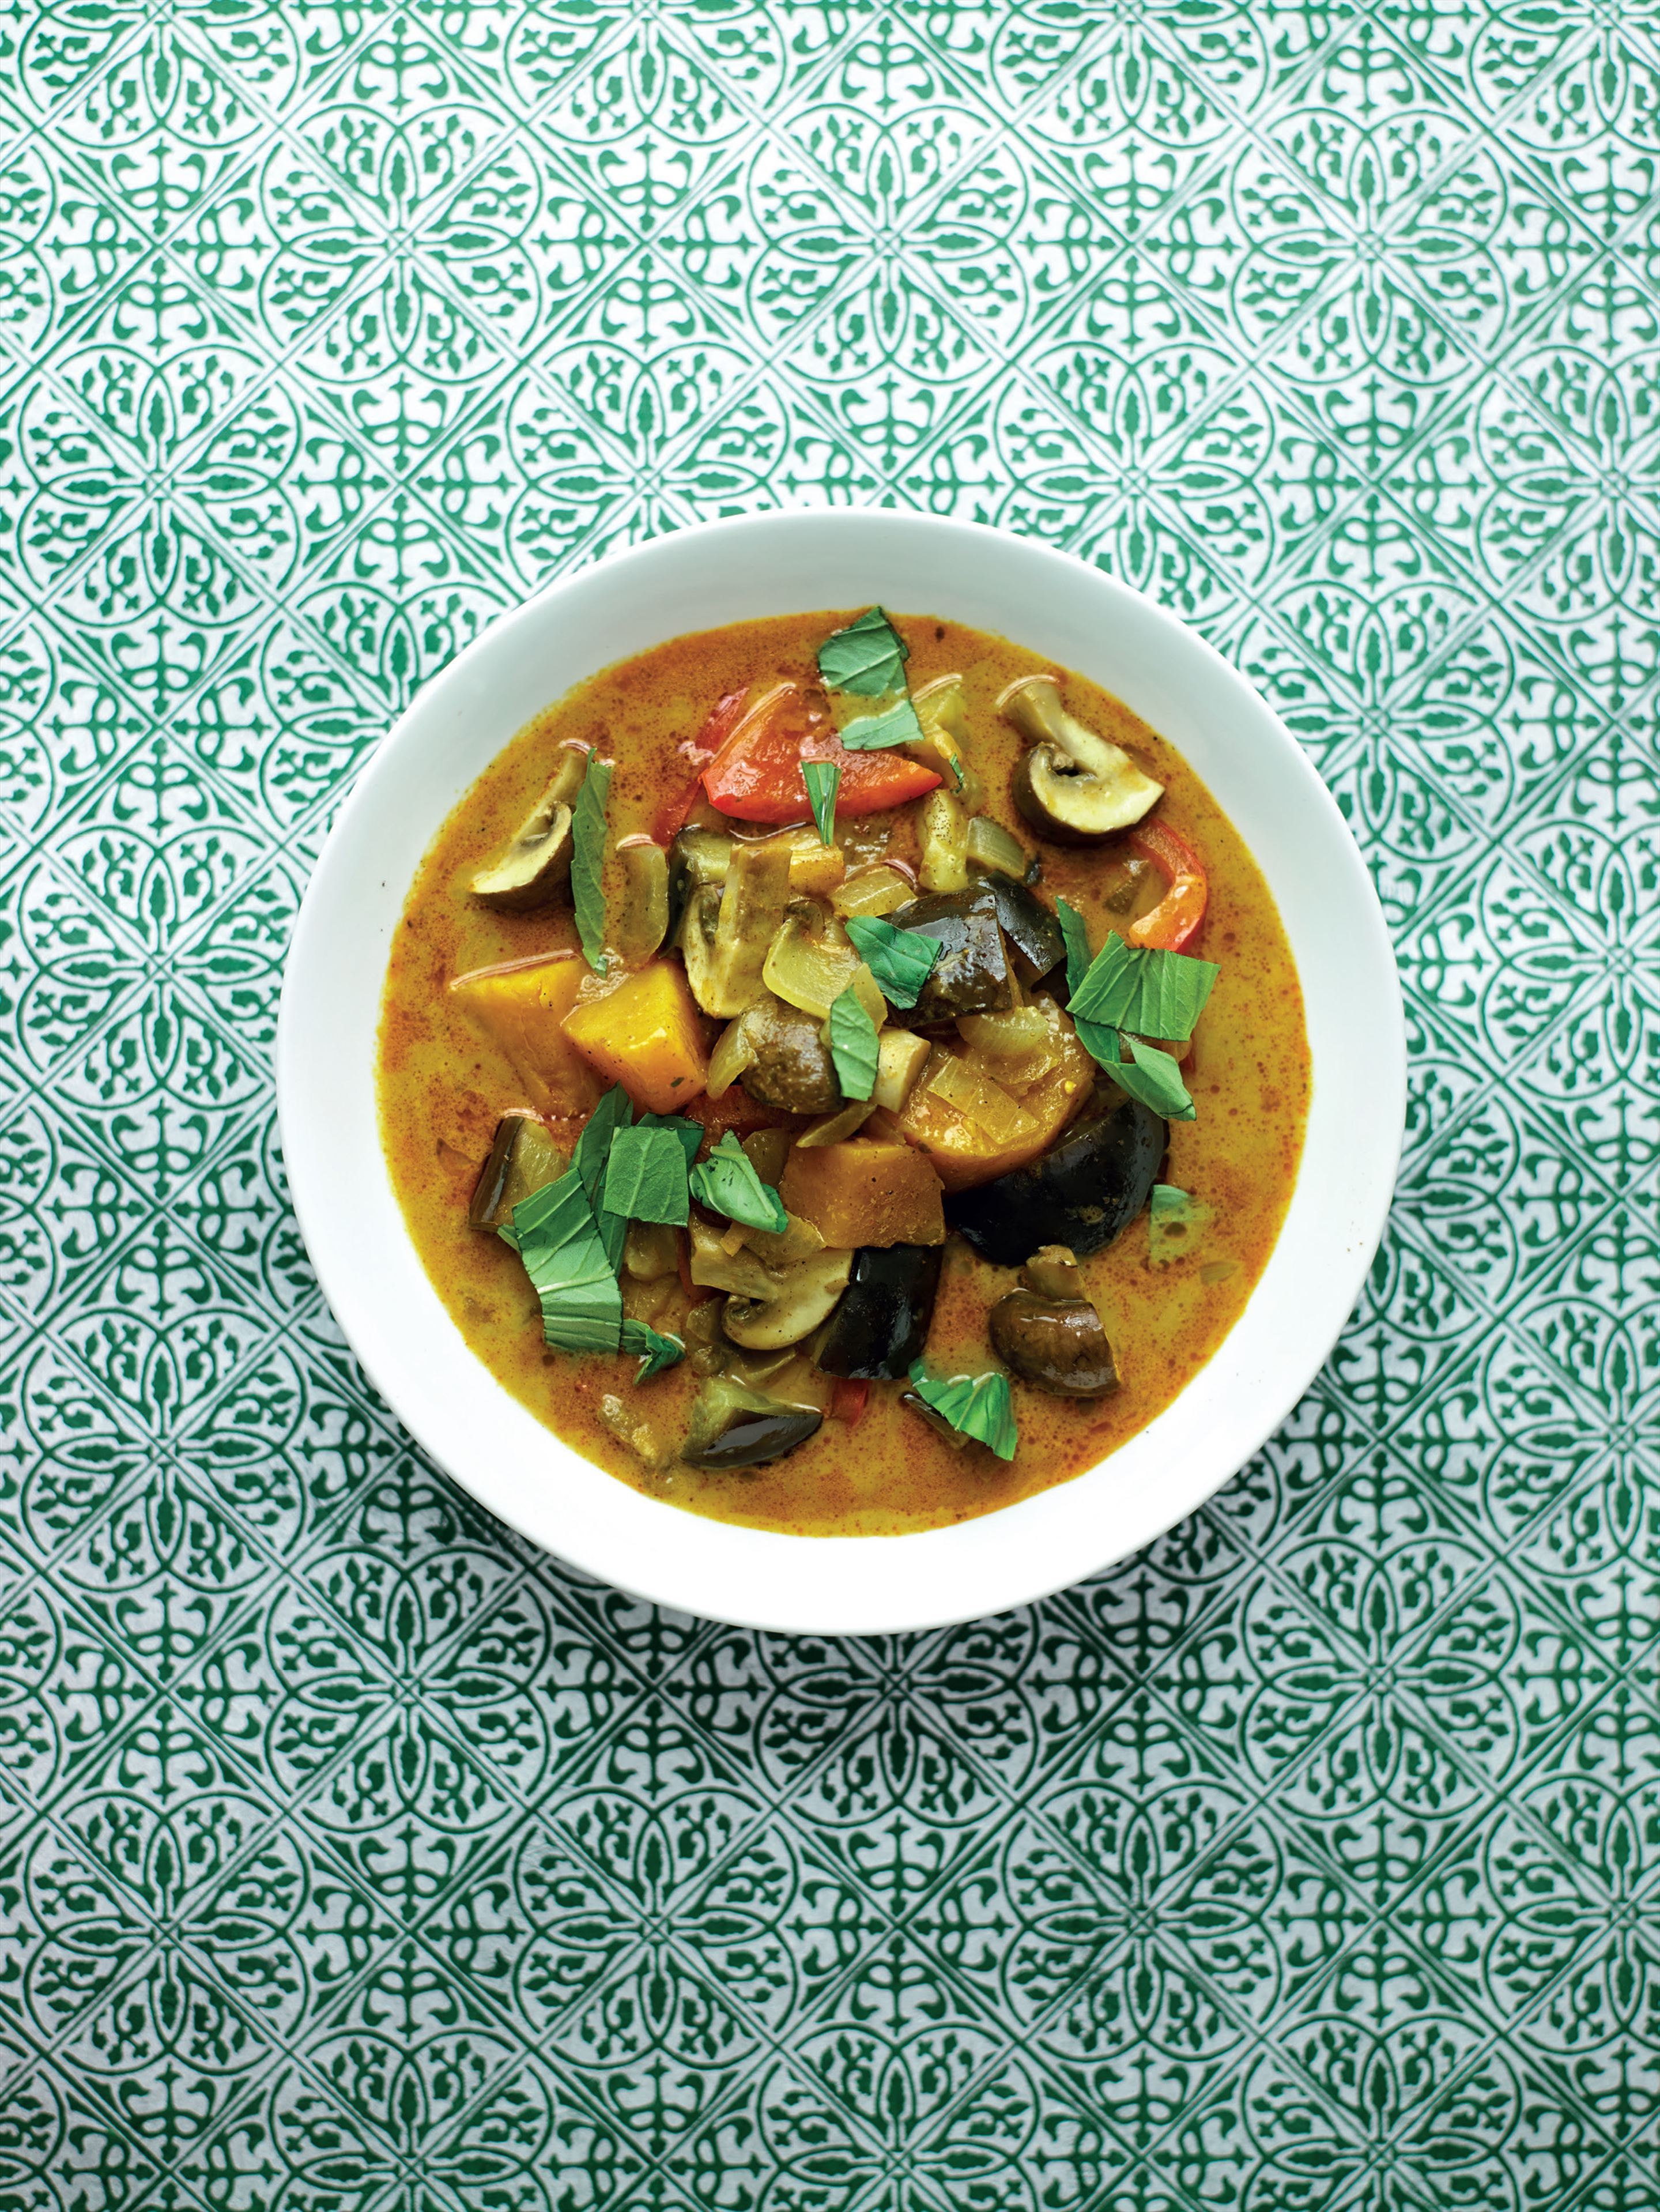 Massaman curry with sweet potato